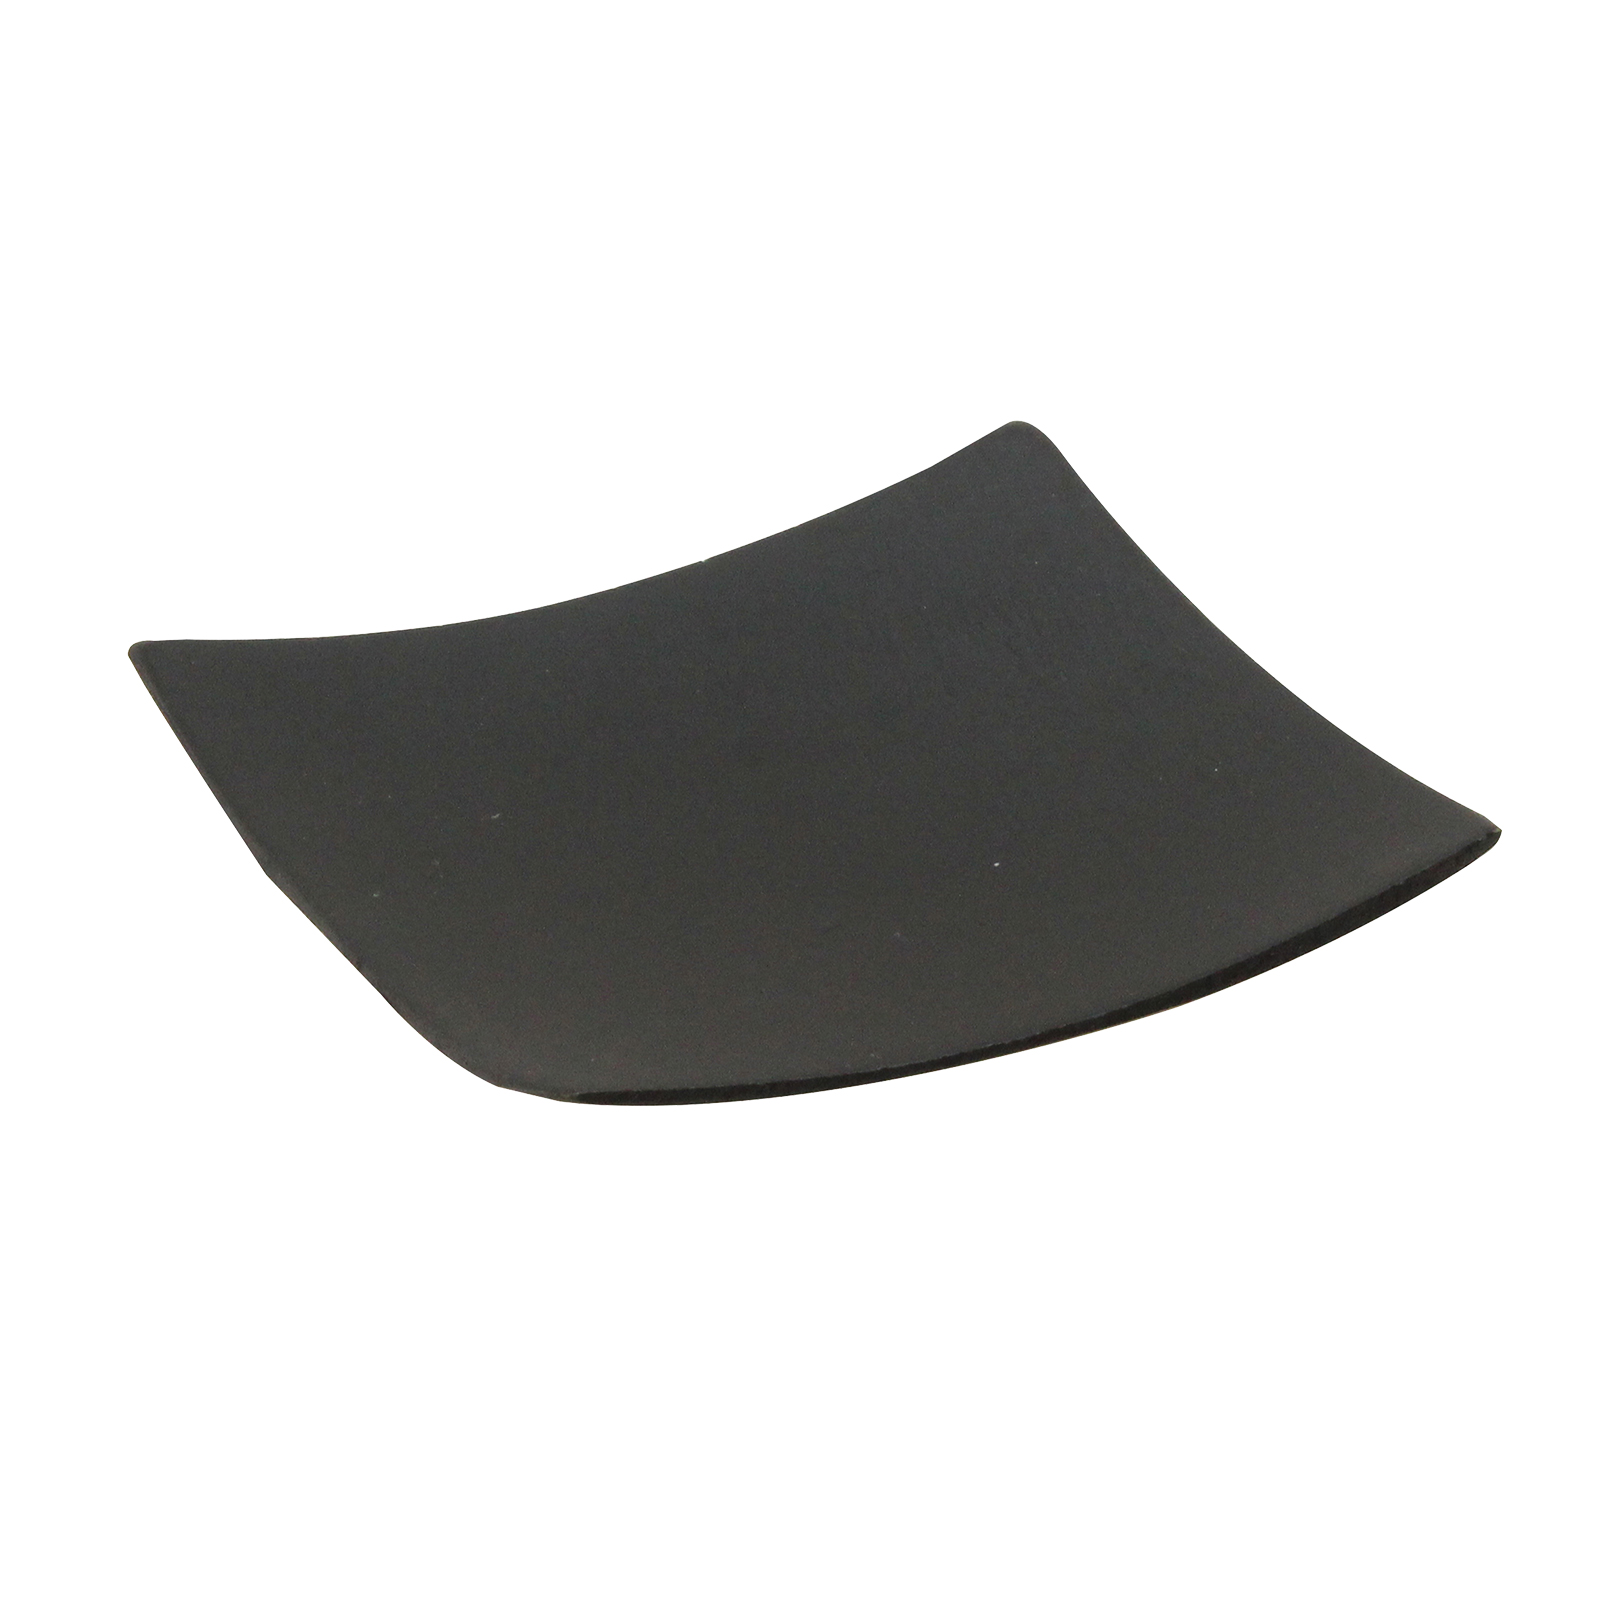 TableCraft Products BAMDSBK2 disposable platters / trays